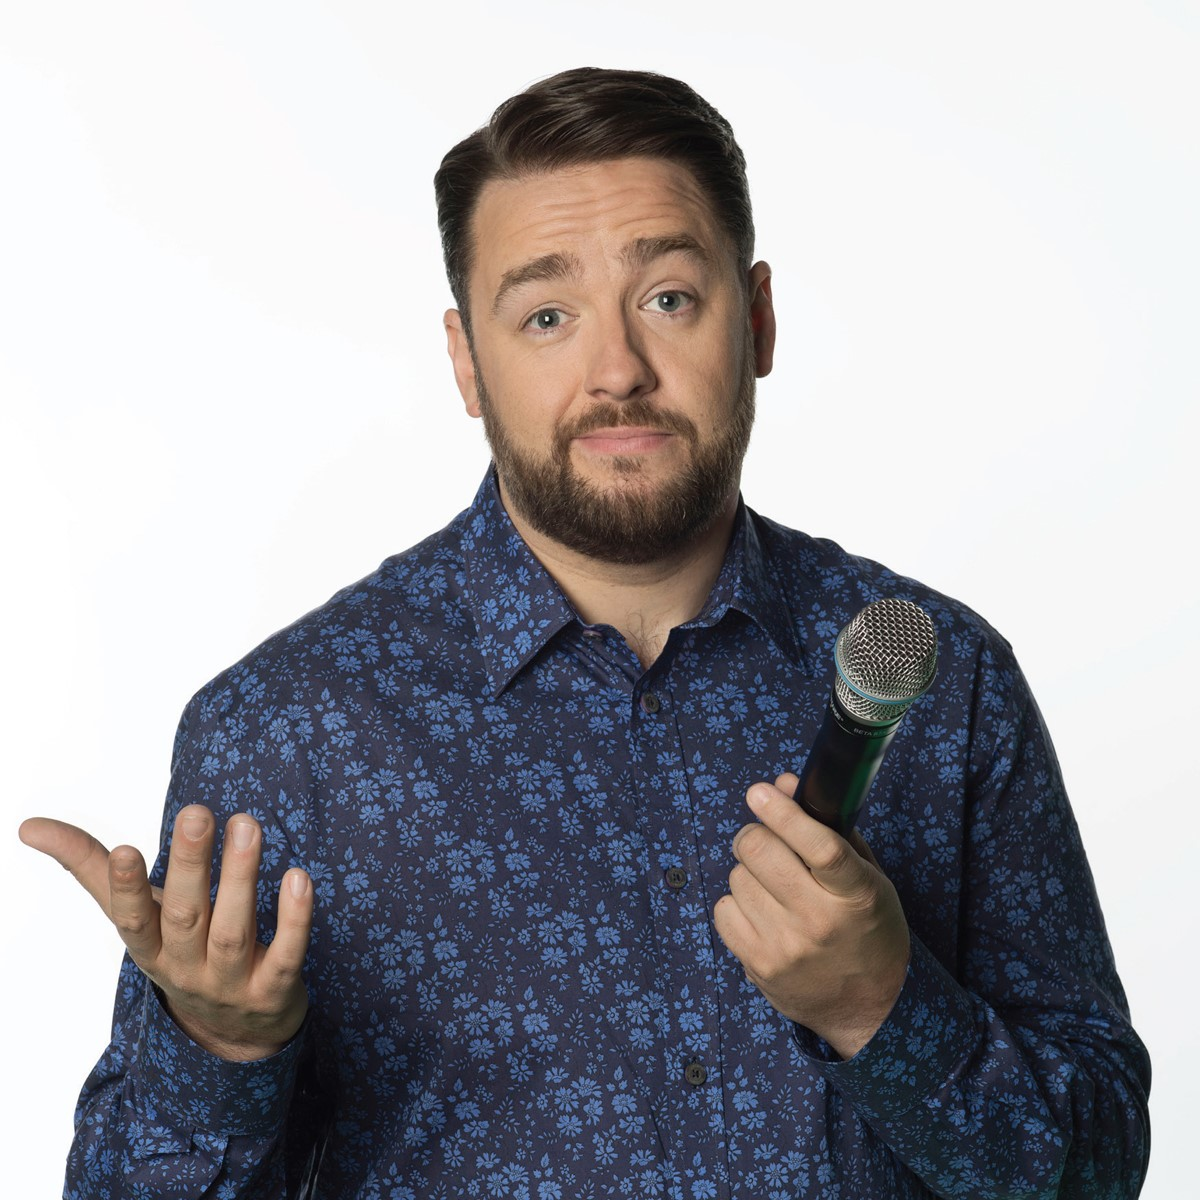 Jason Manford event image